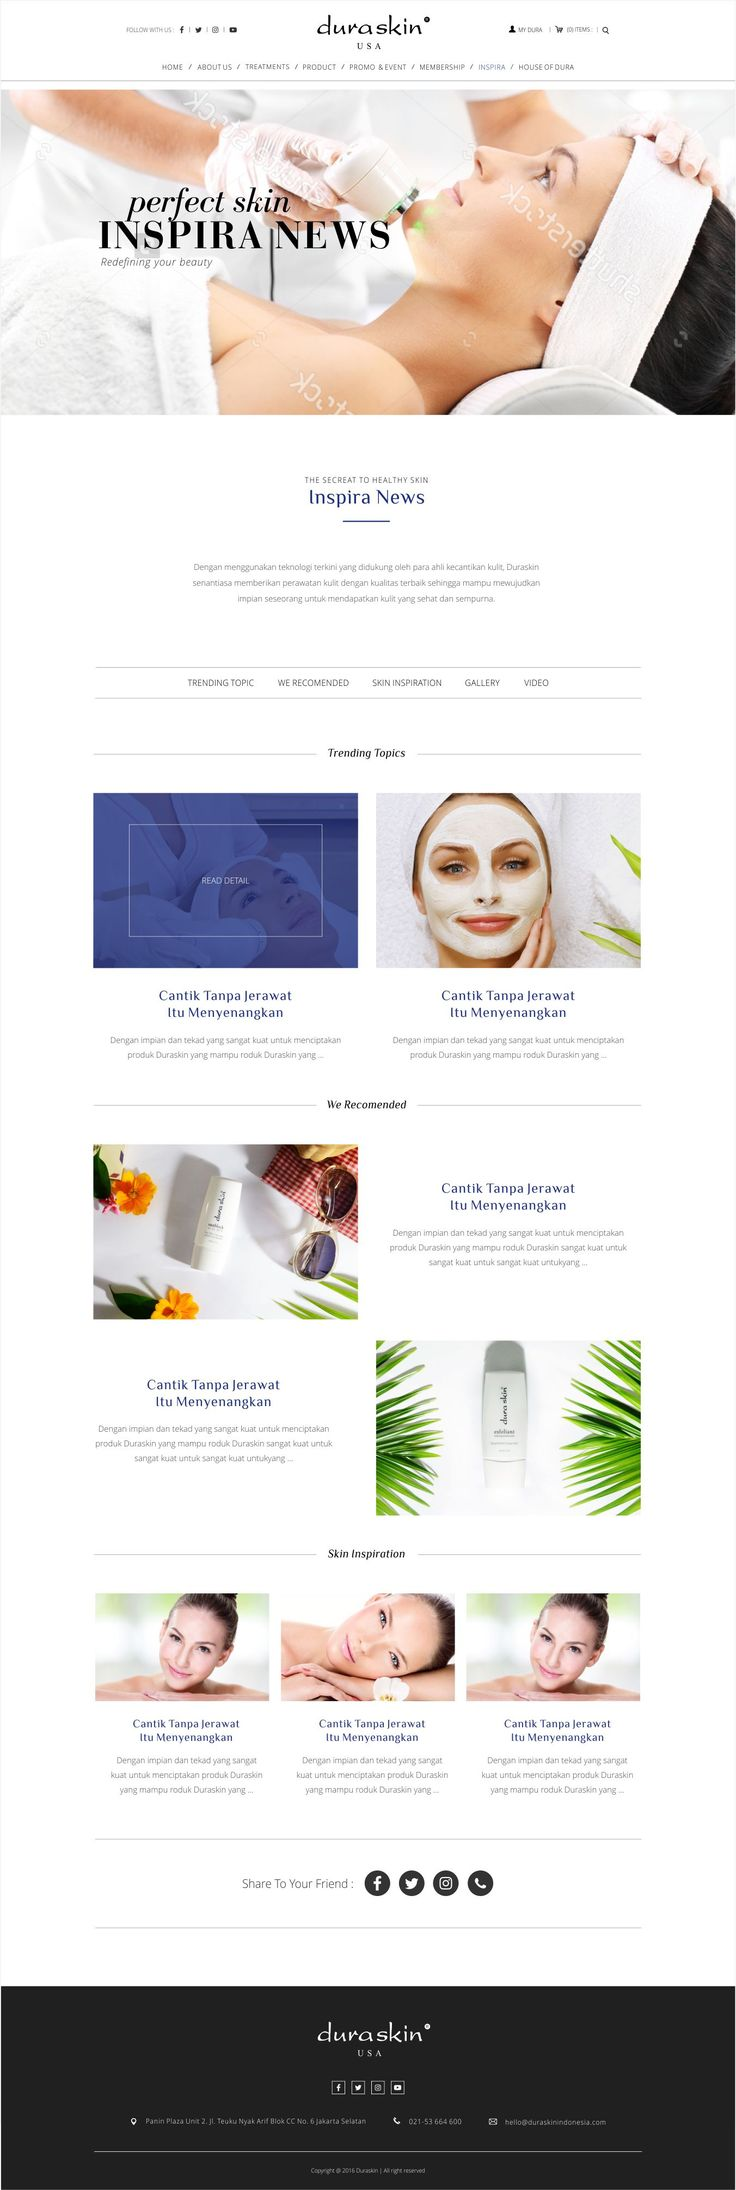 Rian Design Website modern, responsive, simple and elegant